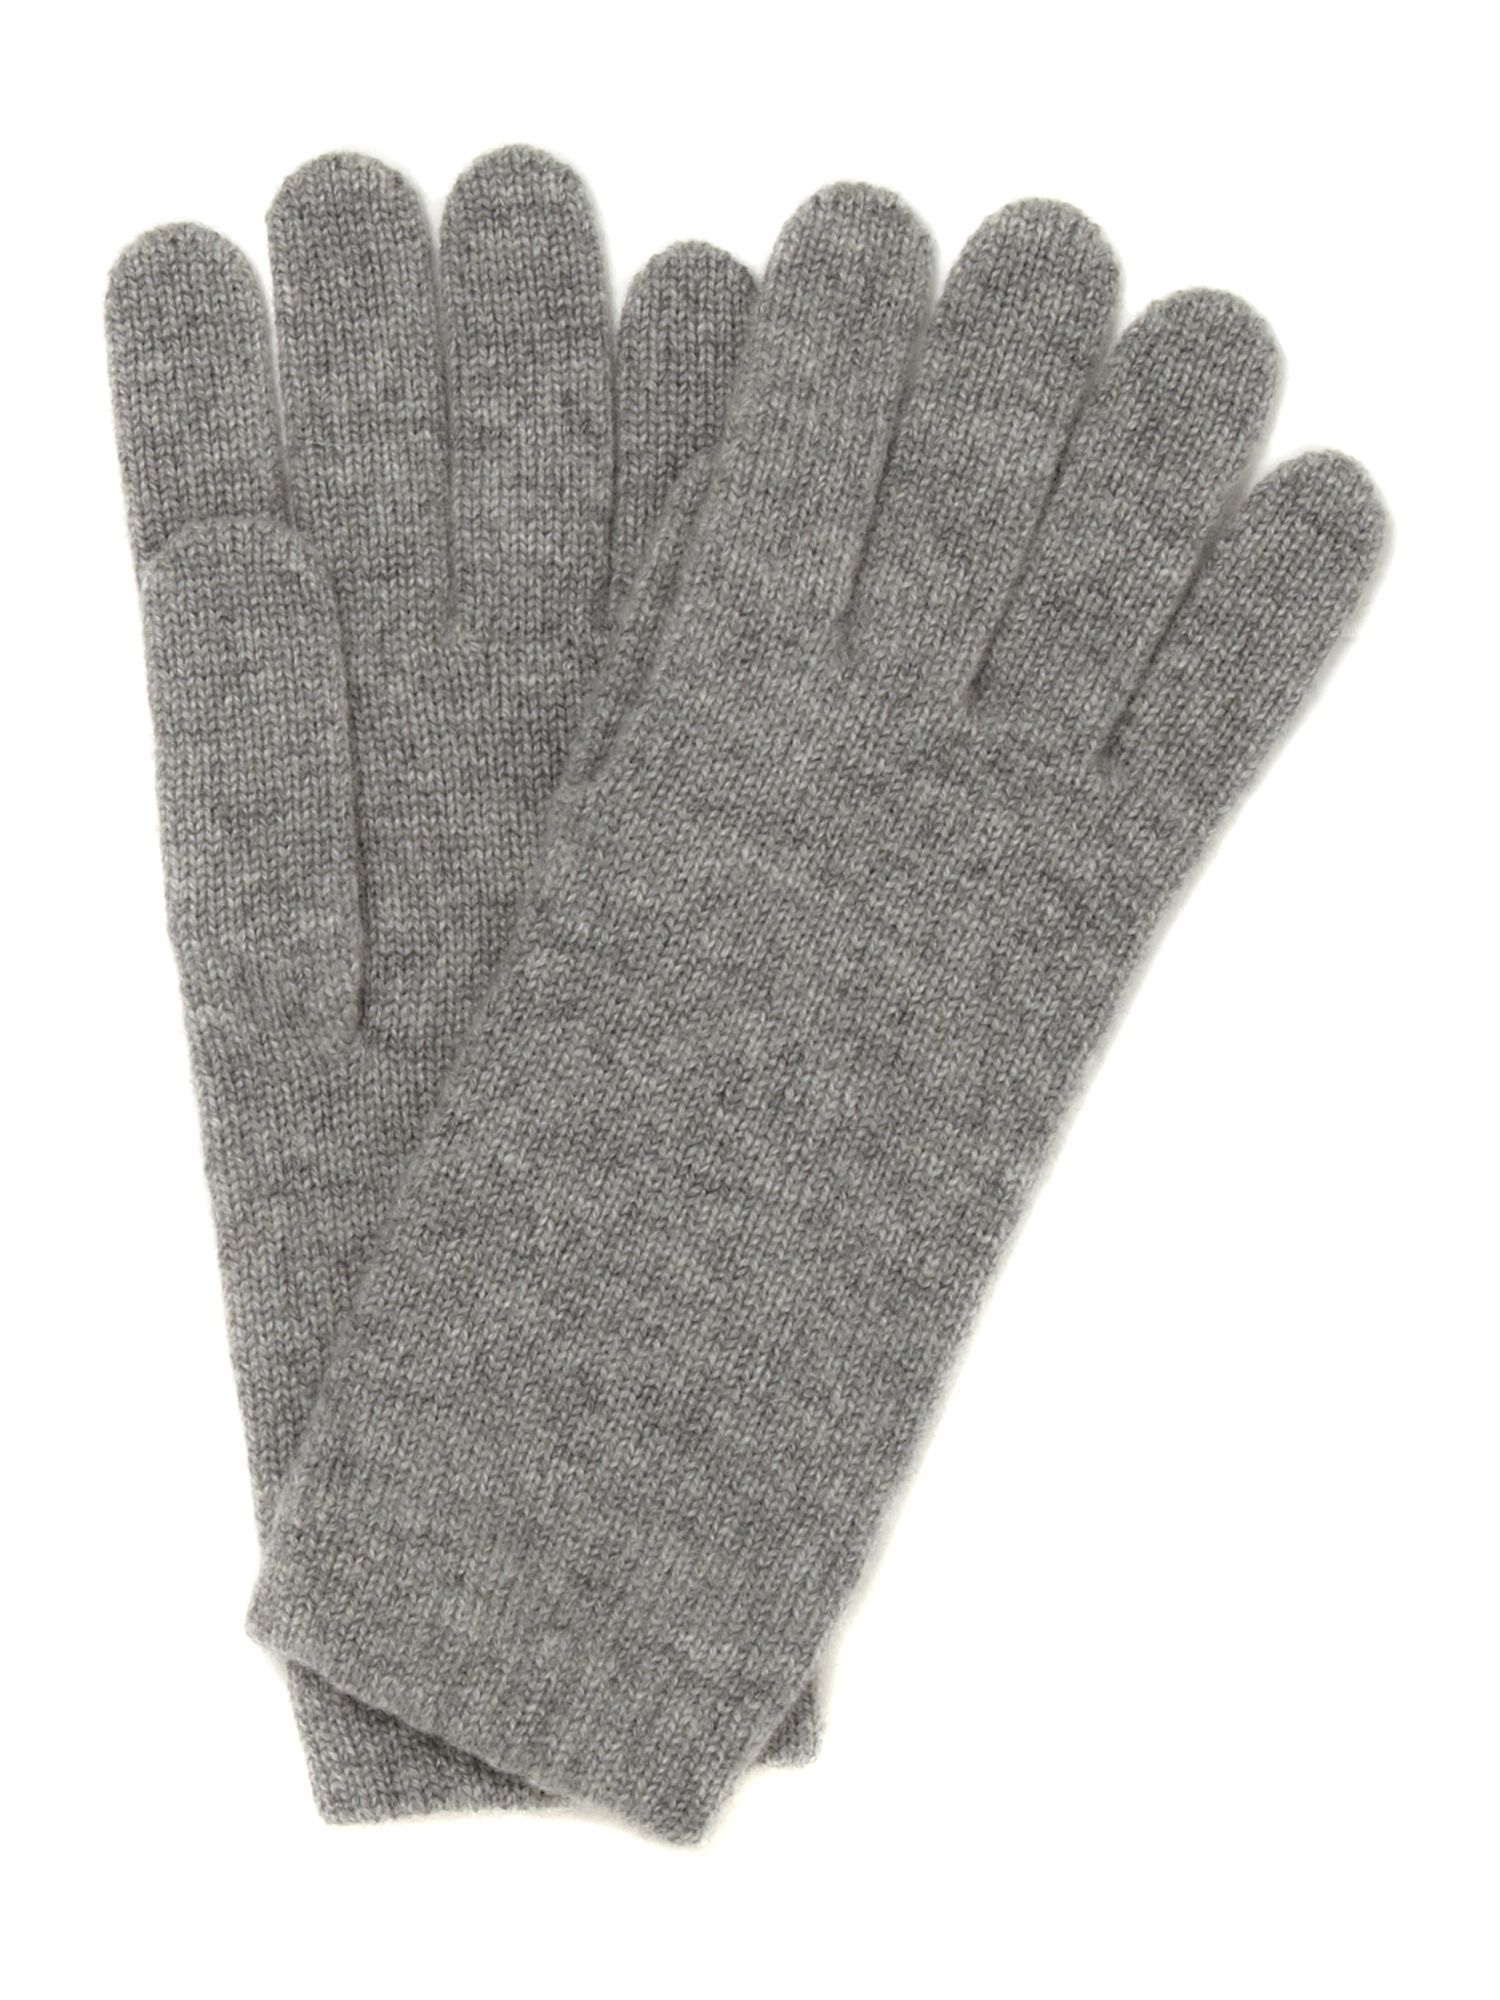 Cashmere knitted short glove